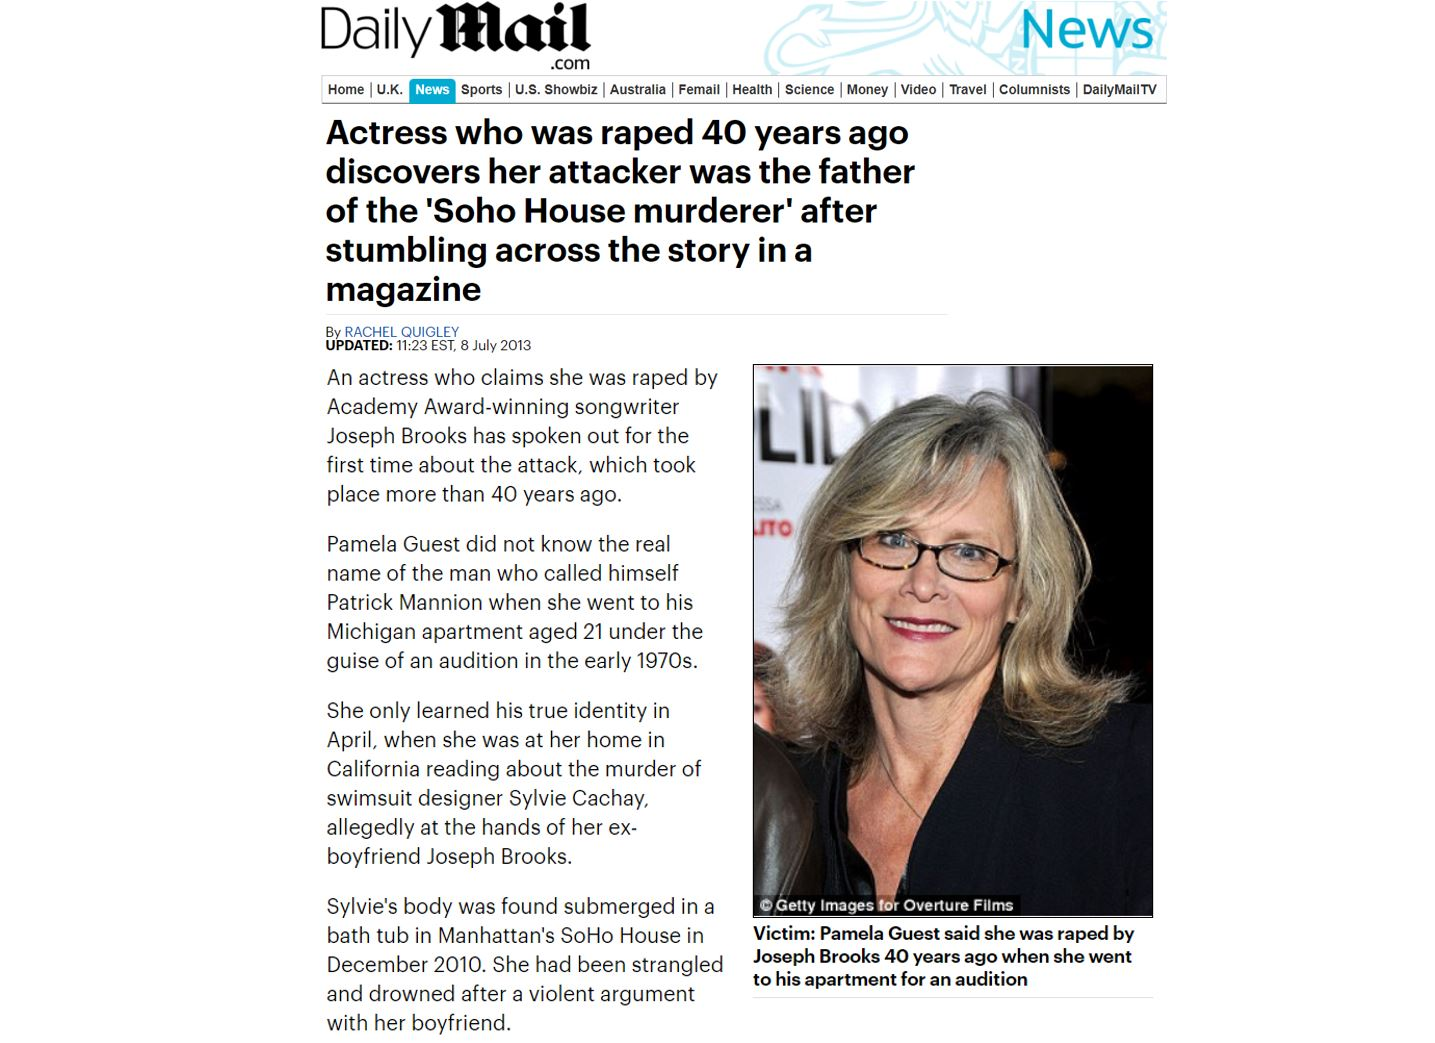 Actress who was raped 40 years ago discovers her attacker was the father of the 'Soho House murderer' after stumbling across the story in a magazine.